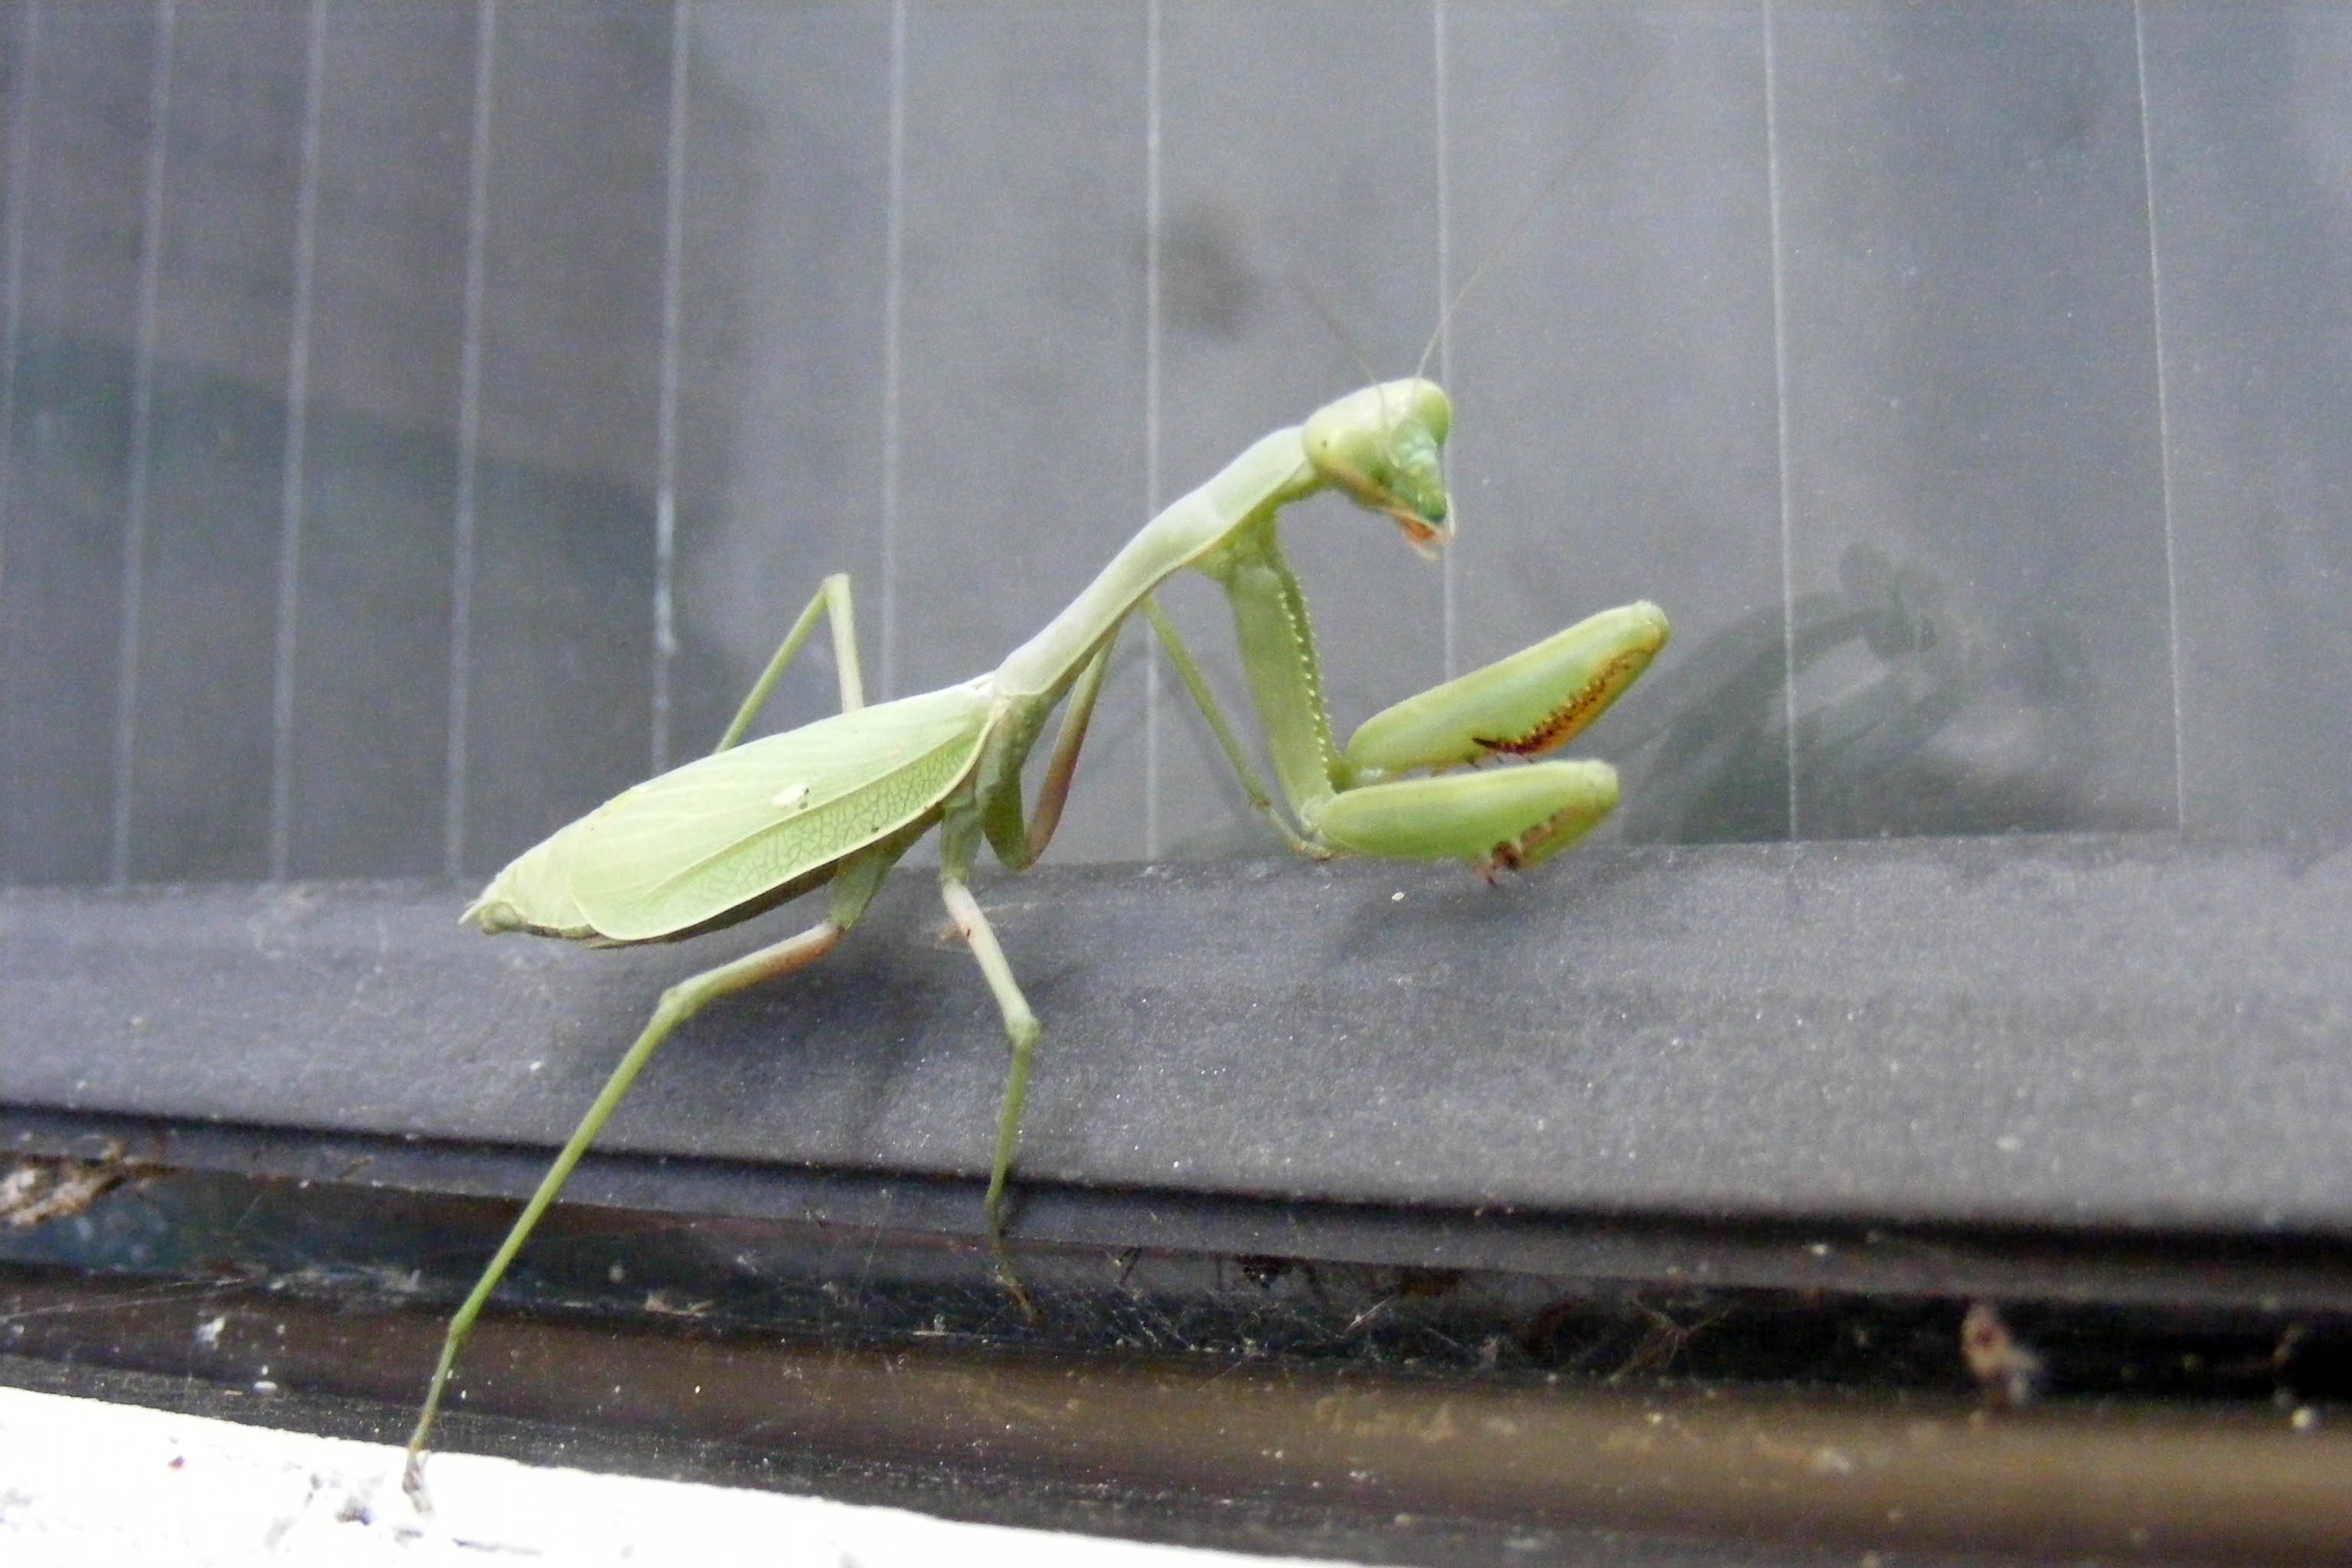 File:Praying Mantis - jsmith.JPG - Wikimedia Commons